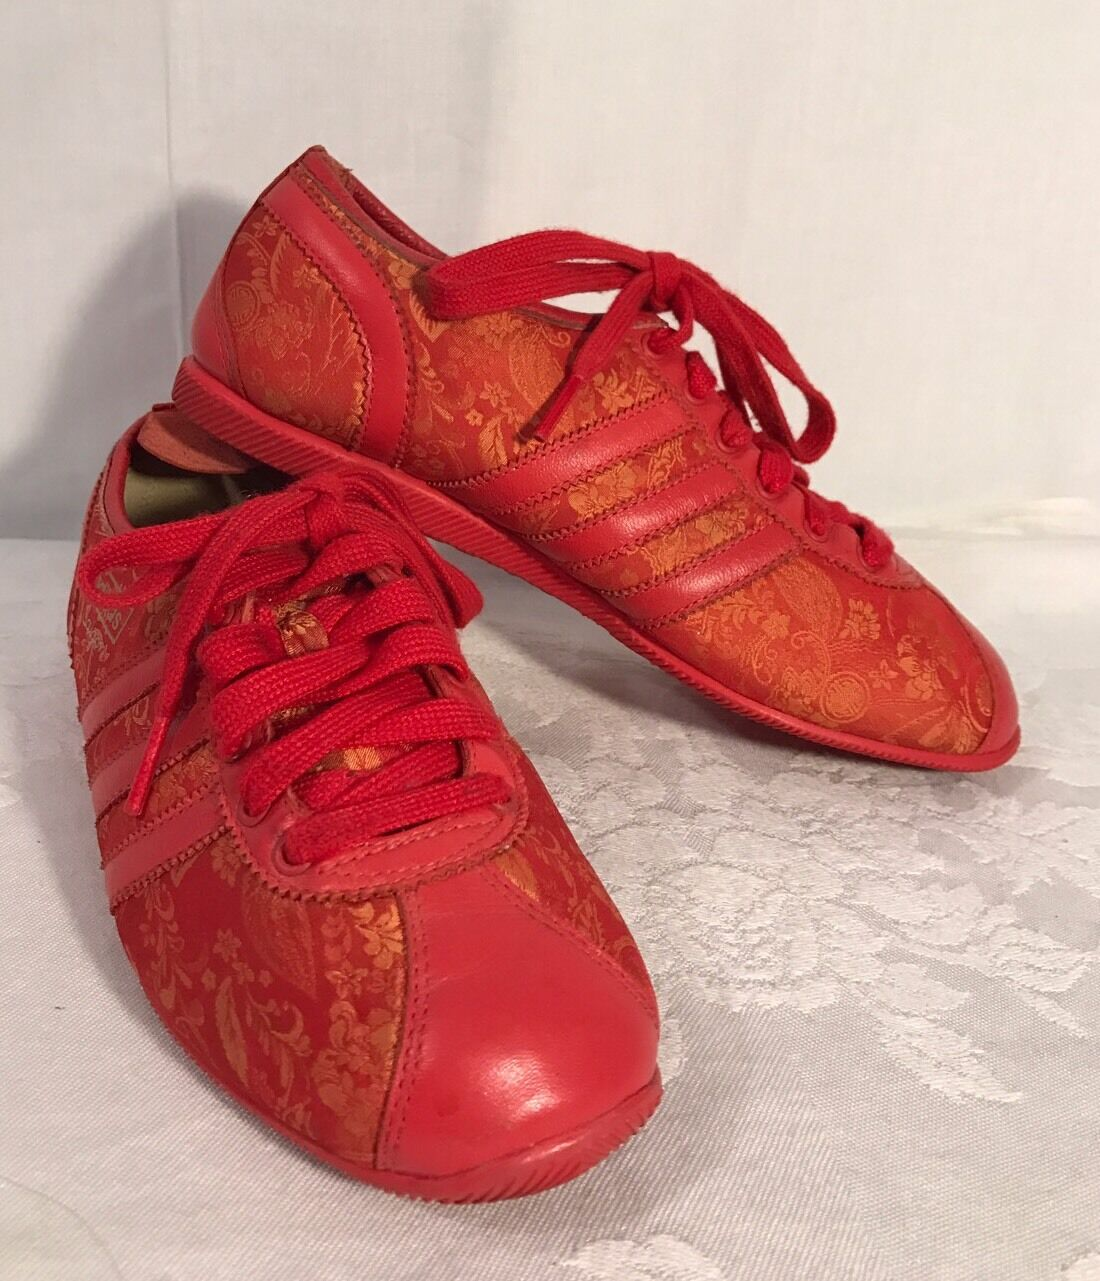 Adidas SAIGON MATERIALS OF THE WORLD Red Gold 1/2 Mens Size US 5 1/2 Gold Sneakers 228c71